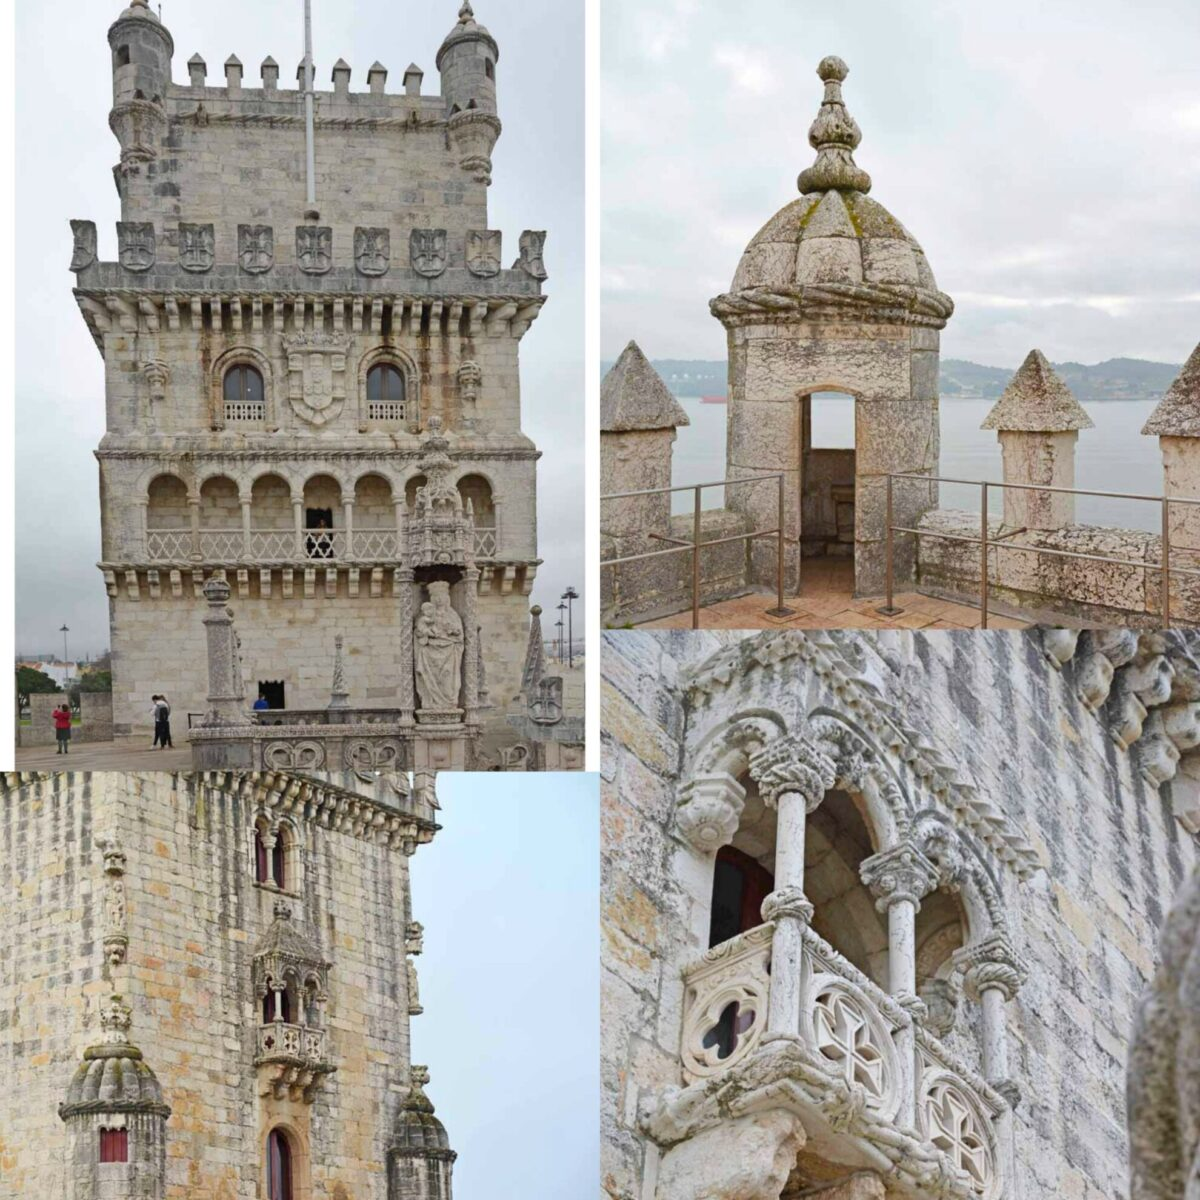 Images from Belem Tower